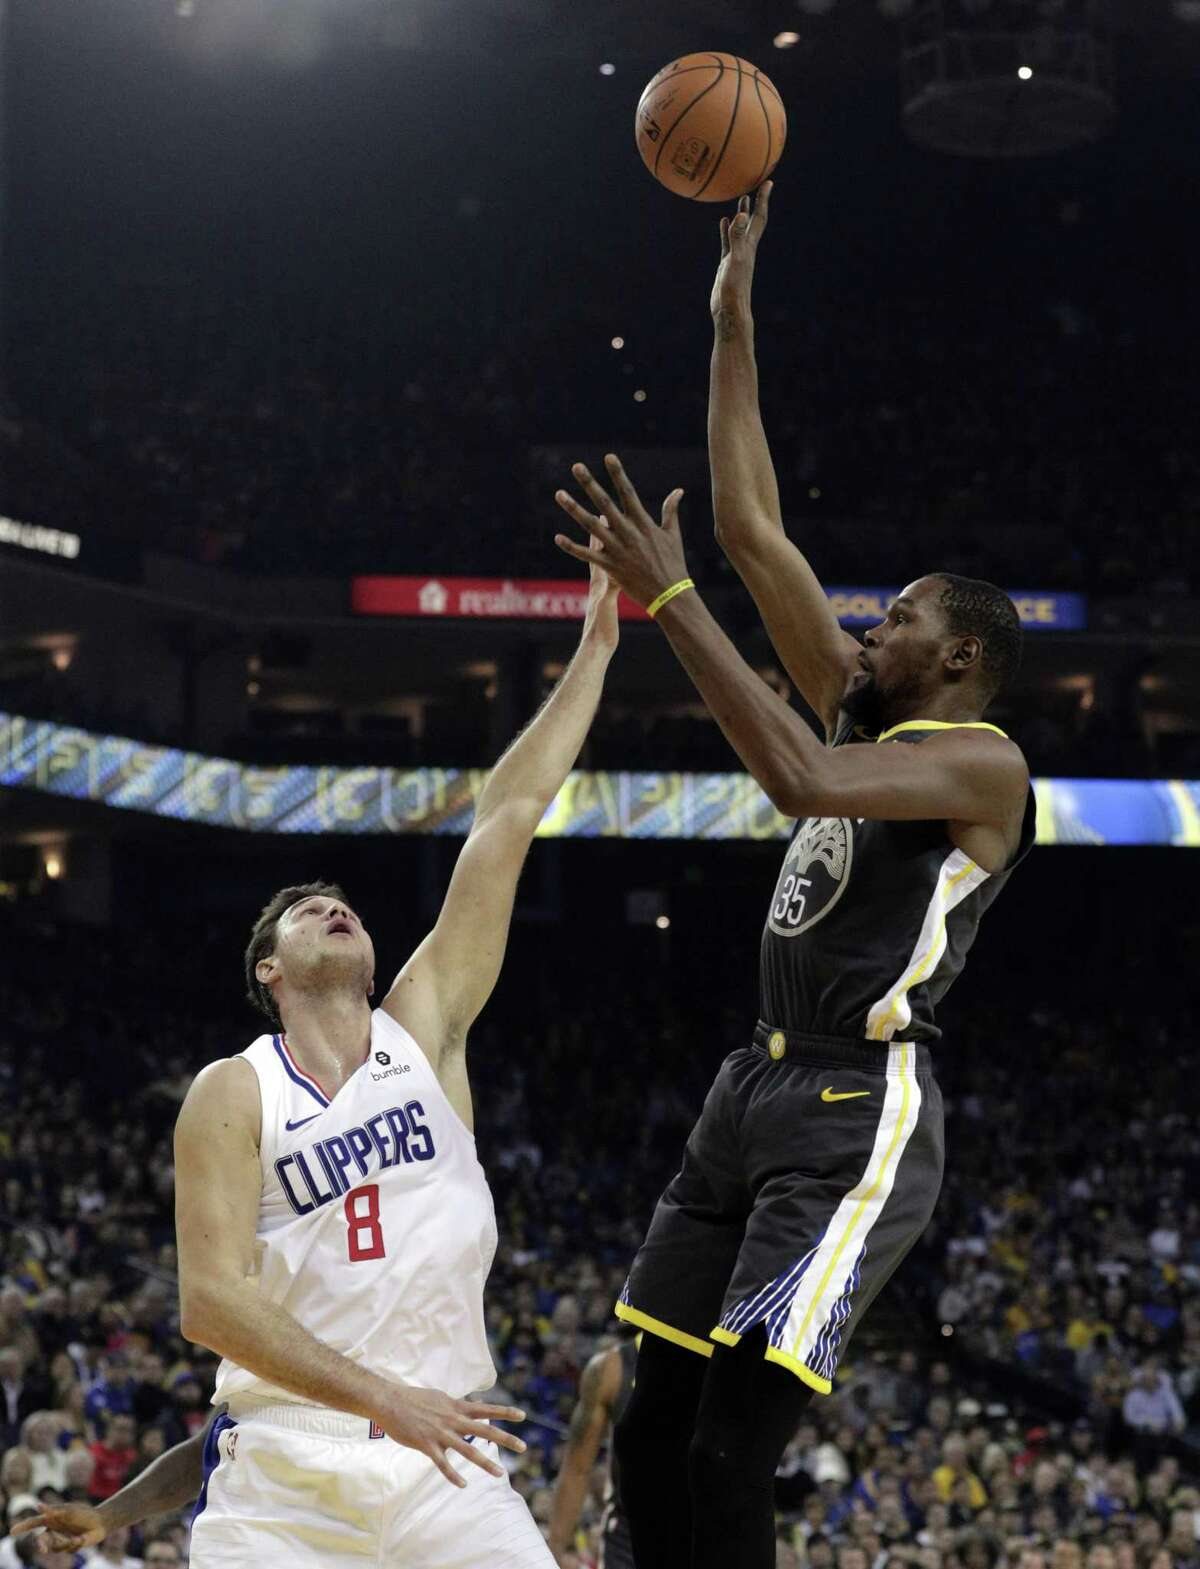 Kevin Durant (35) shoots over Danilo Gallinari (8) in the first half as the Golden State Warriors played the Los Angeles Clippers at Oracle Arena in Oakland, Calif., on Sunday, December 23, 2018.